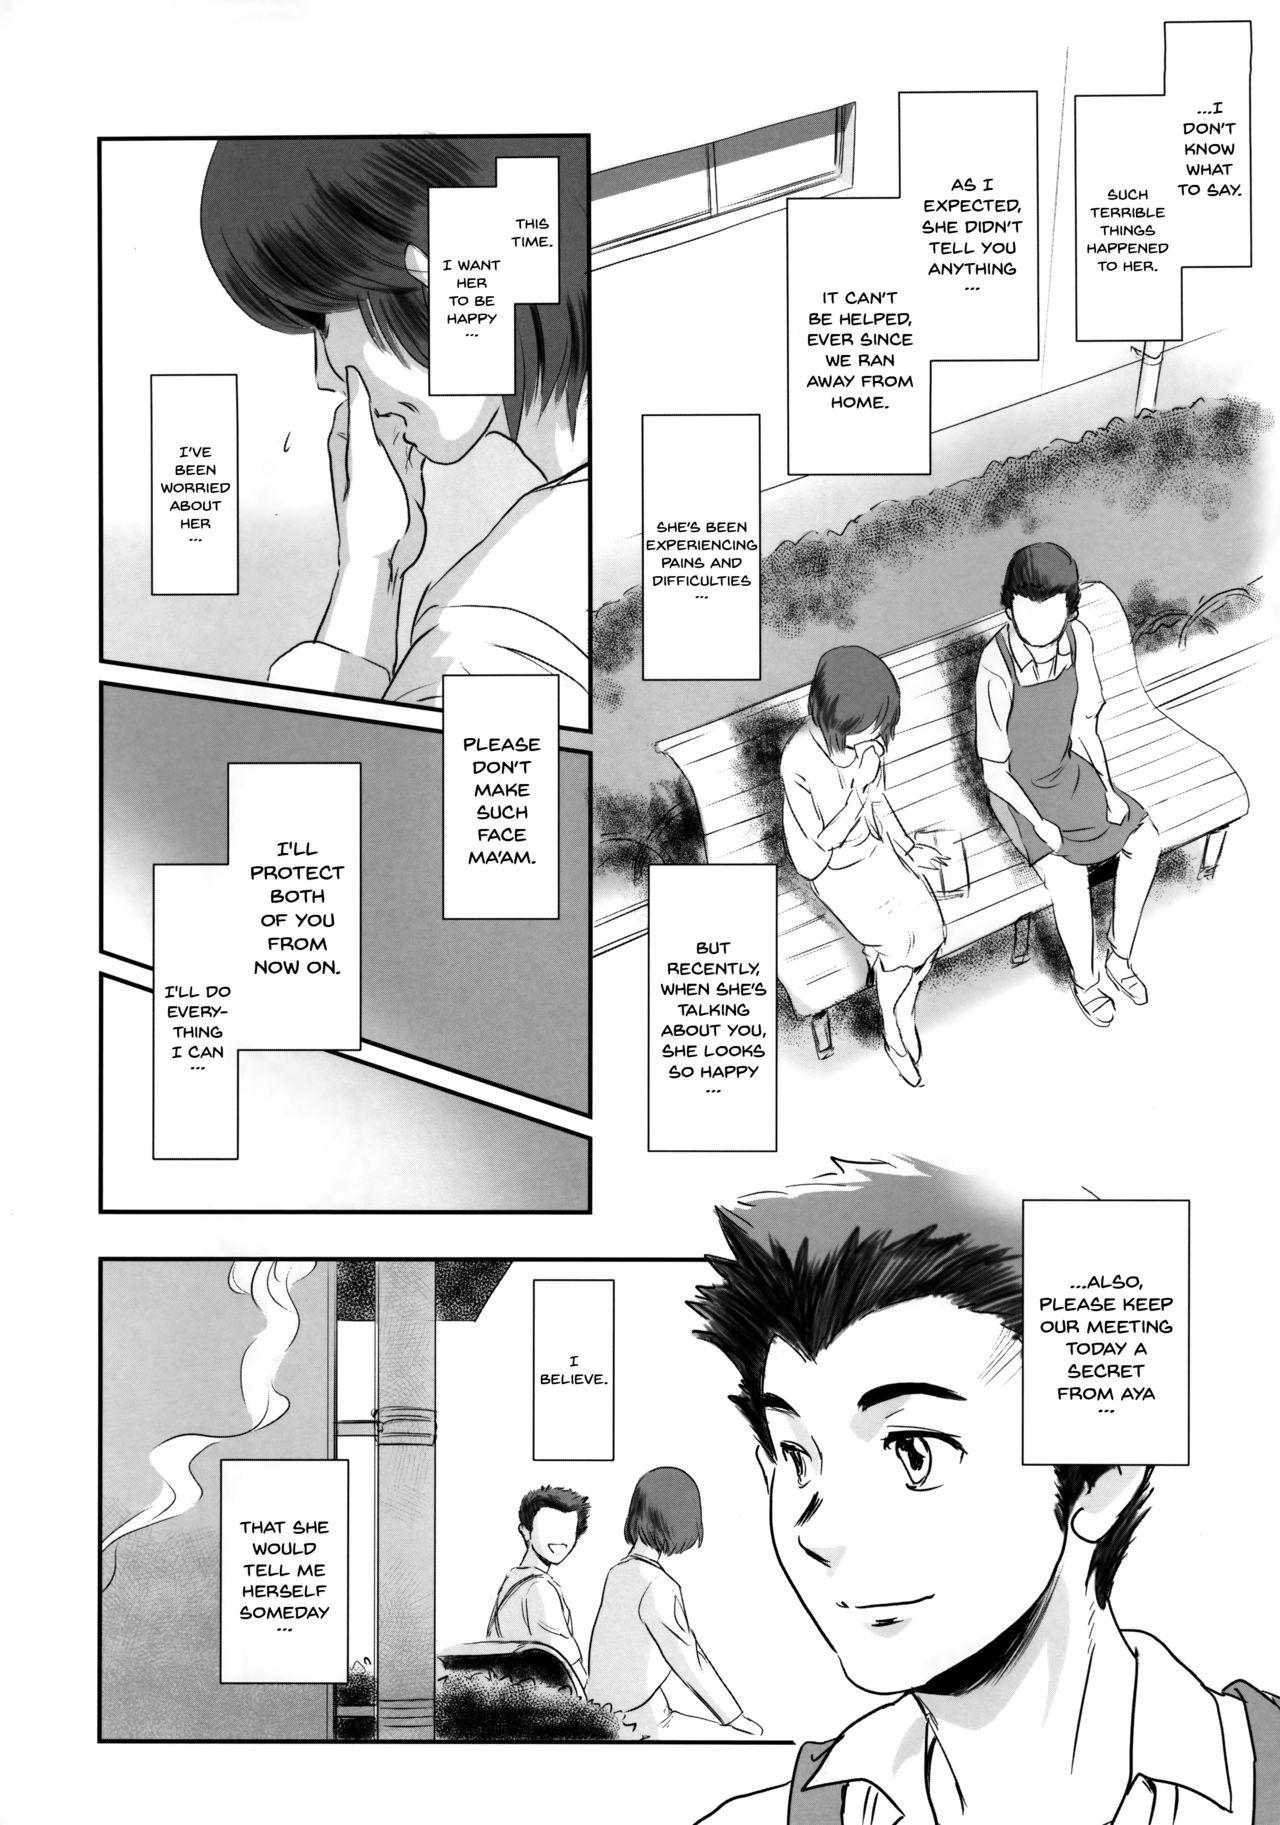 Story of the 'N' Situation - Situation#1 Kyouhaku 36